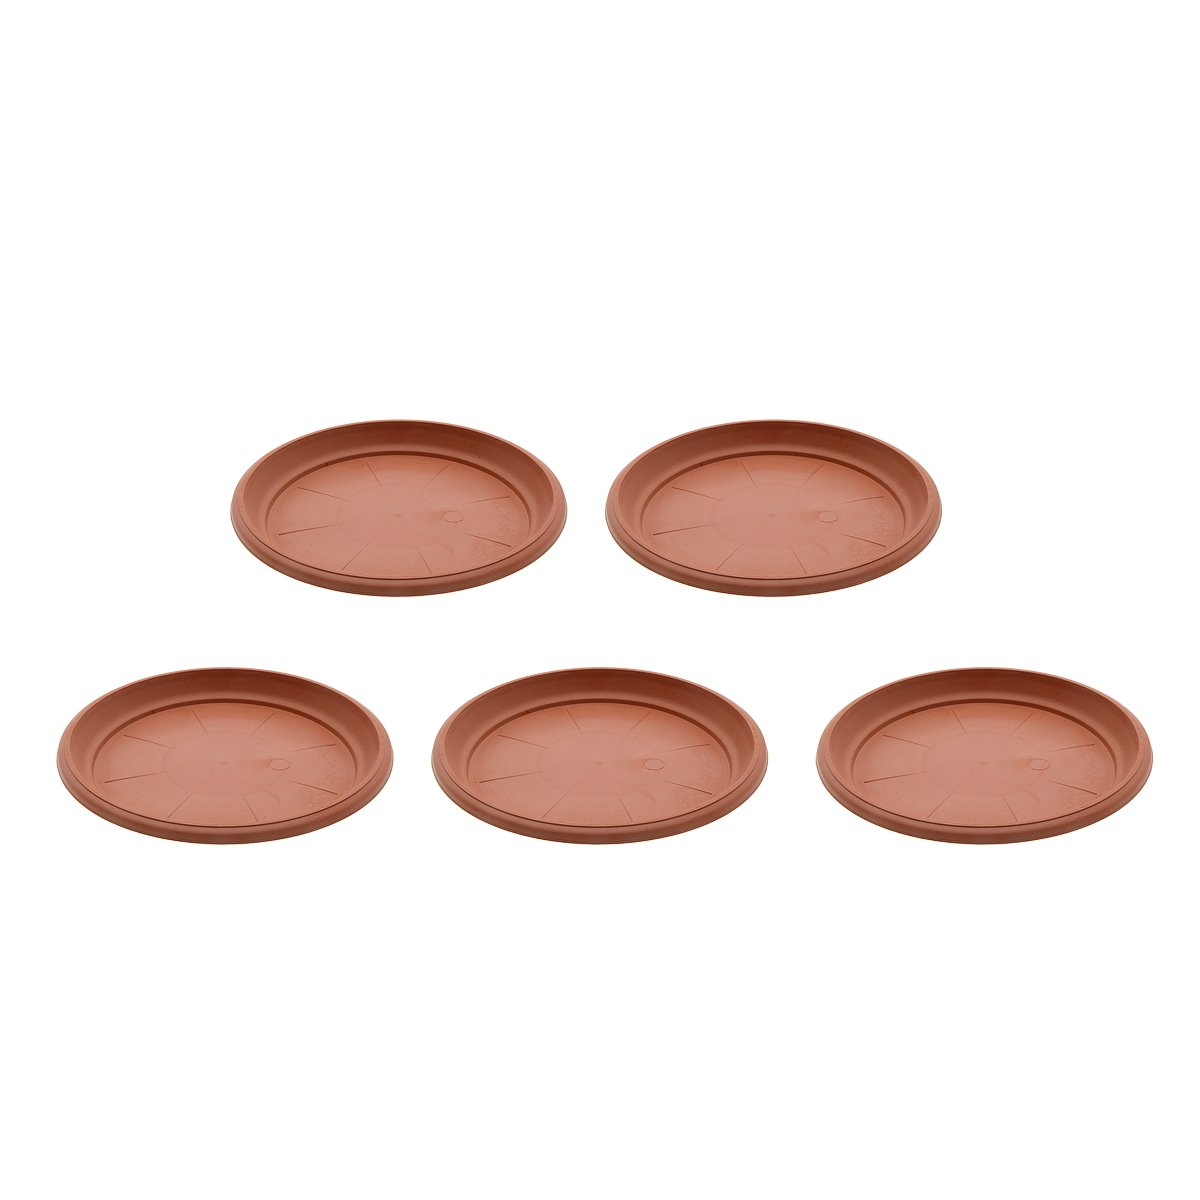 Saim Coffee Plastic Round Saucers Plant Pot Saucers Potted Plant Saucer Clay Plant Saucer Flower Plant Pot Saucer Pallet Trays For Indoor & Outdoor Plants, 8.9-Inch Diameter, Pack of 5